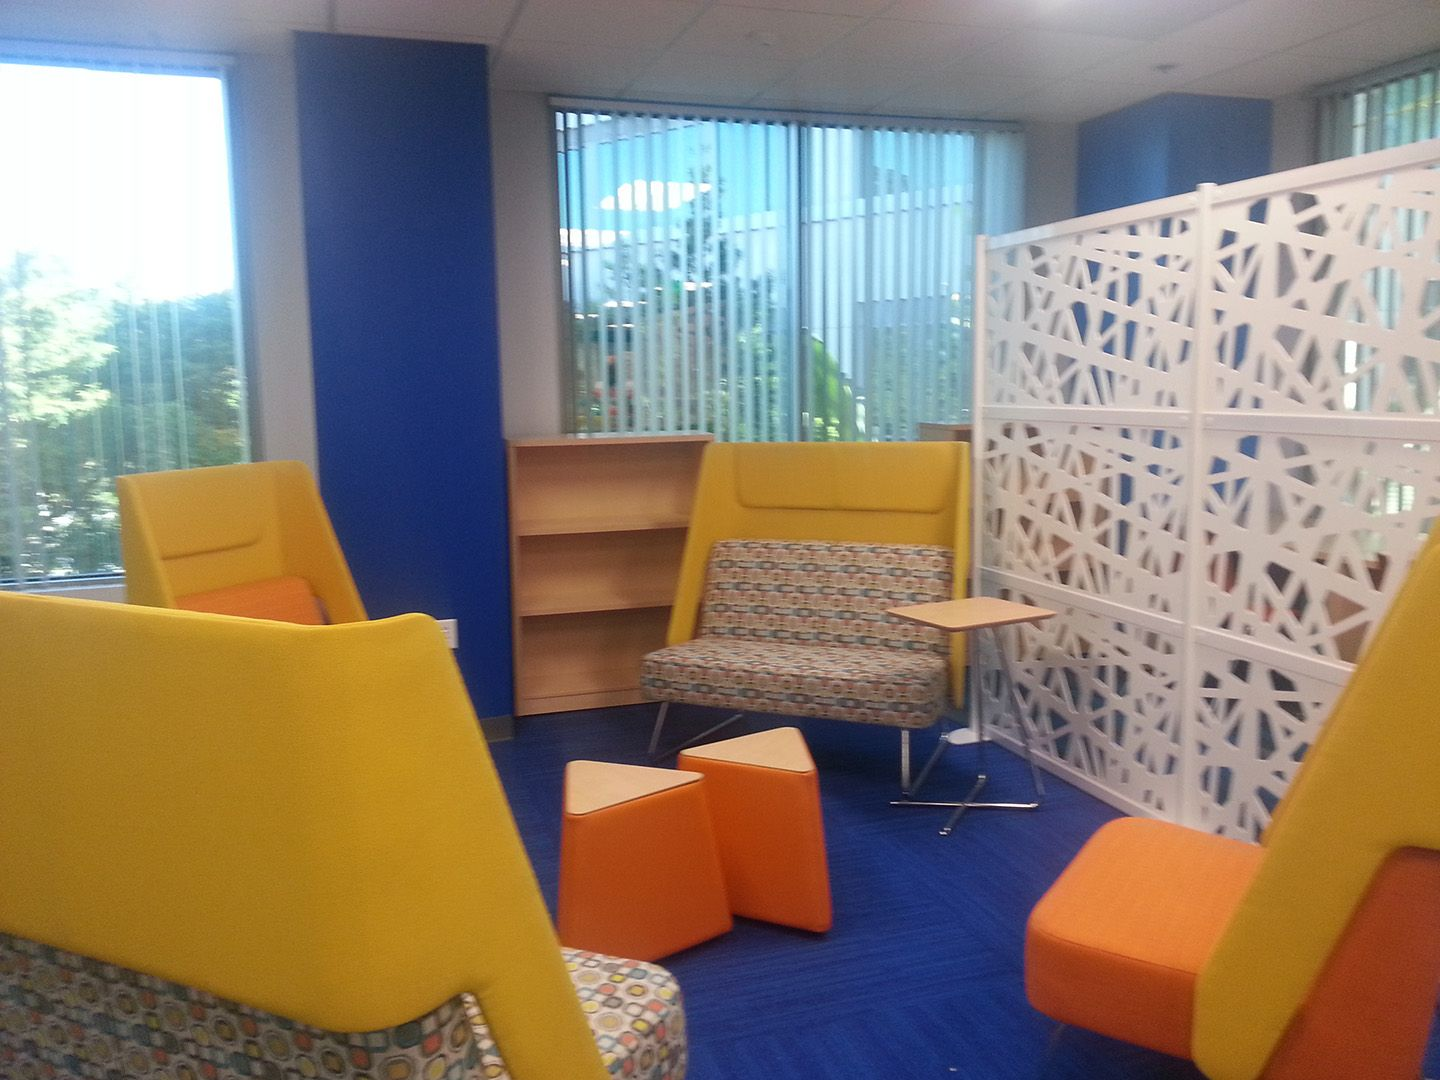 Living Room Furniture San Diego Visor Particles And Cielo Pull Up Table Halstrom Academy San